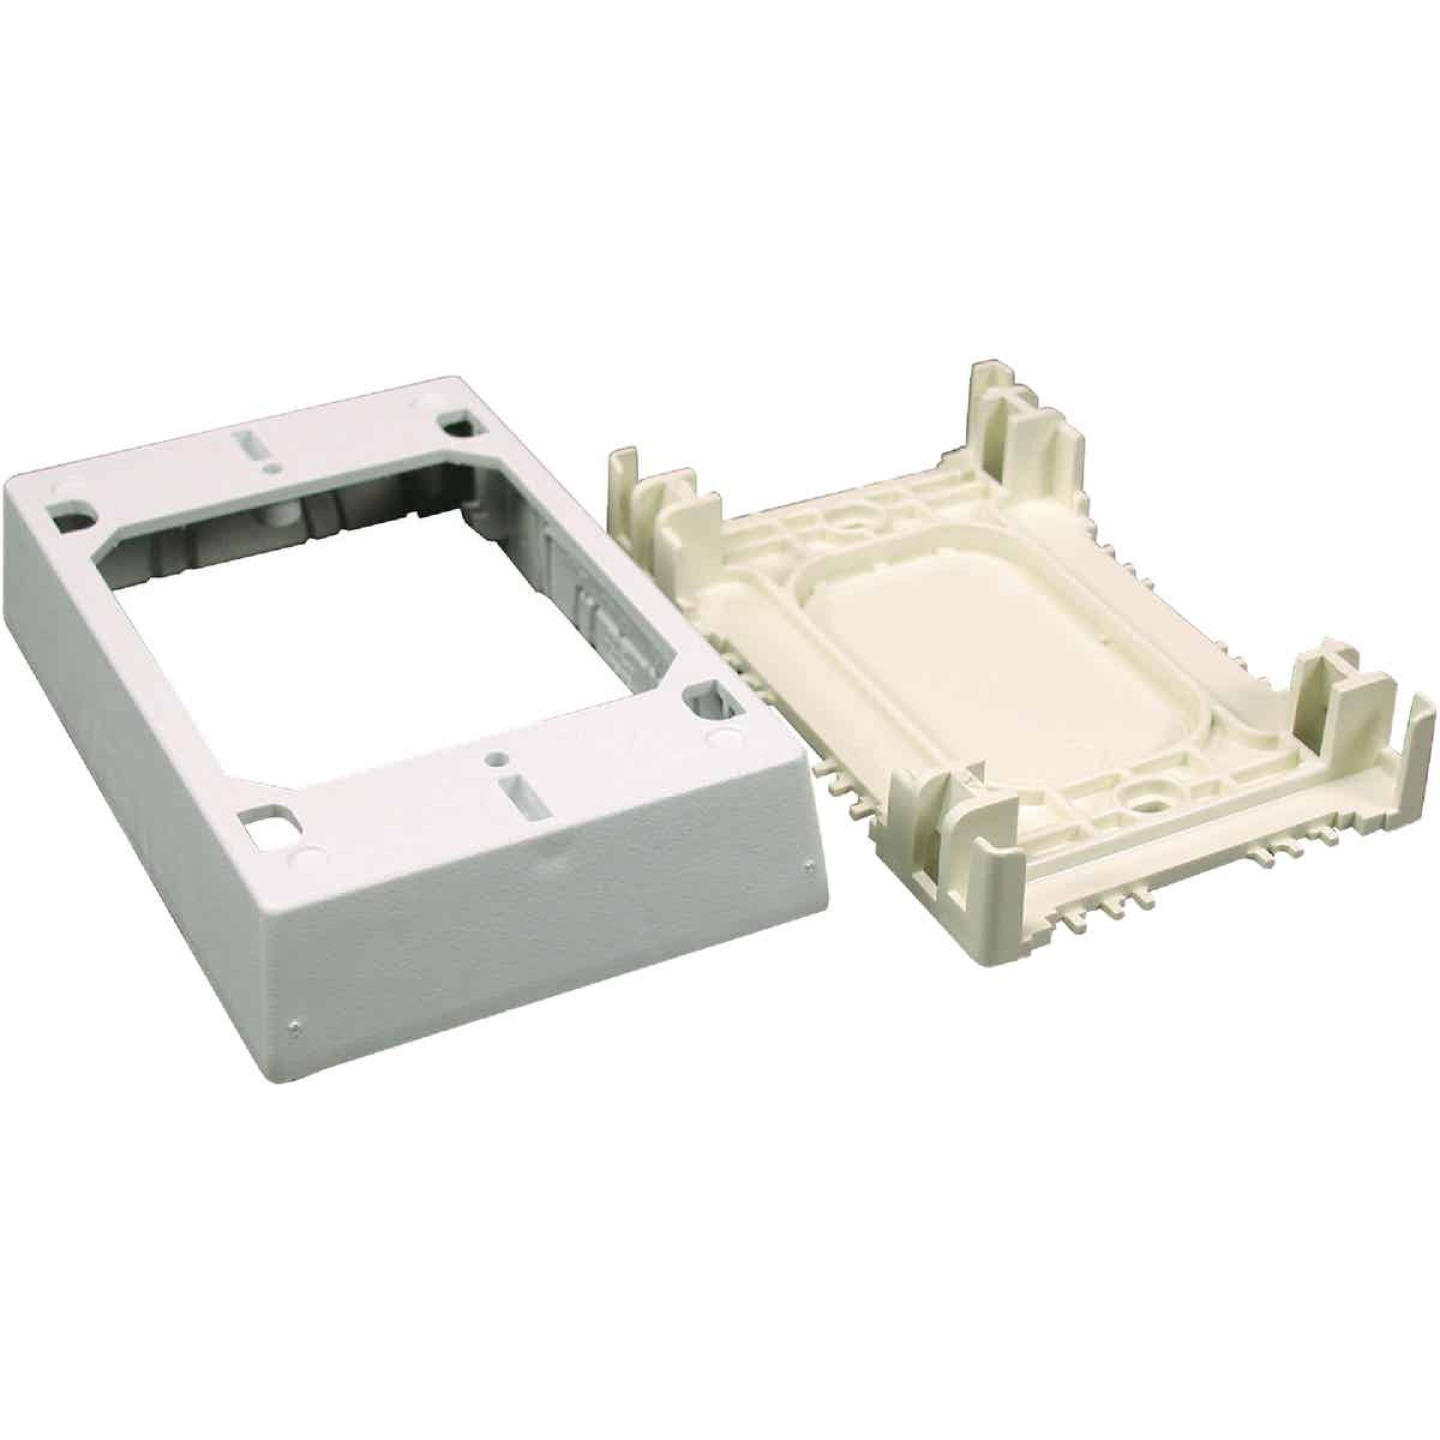 Wiremold CordMate White Plastic 1-3/4 In. Extra Deep Outlet Box Image 1